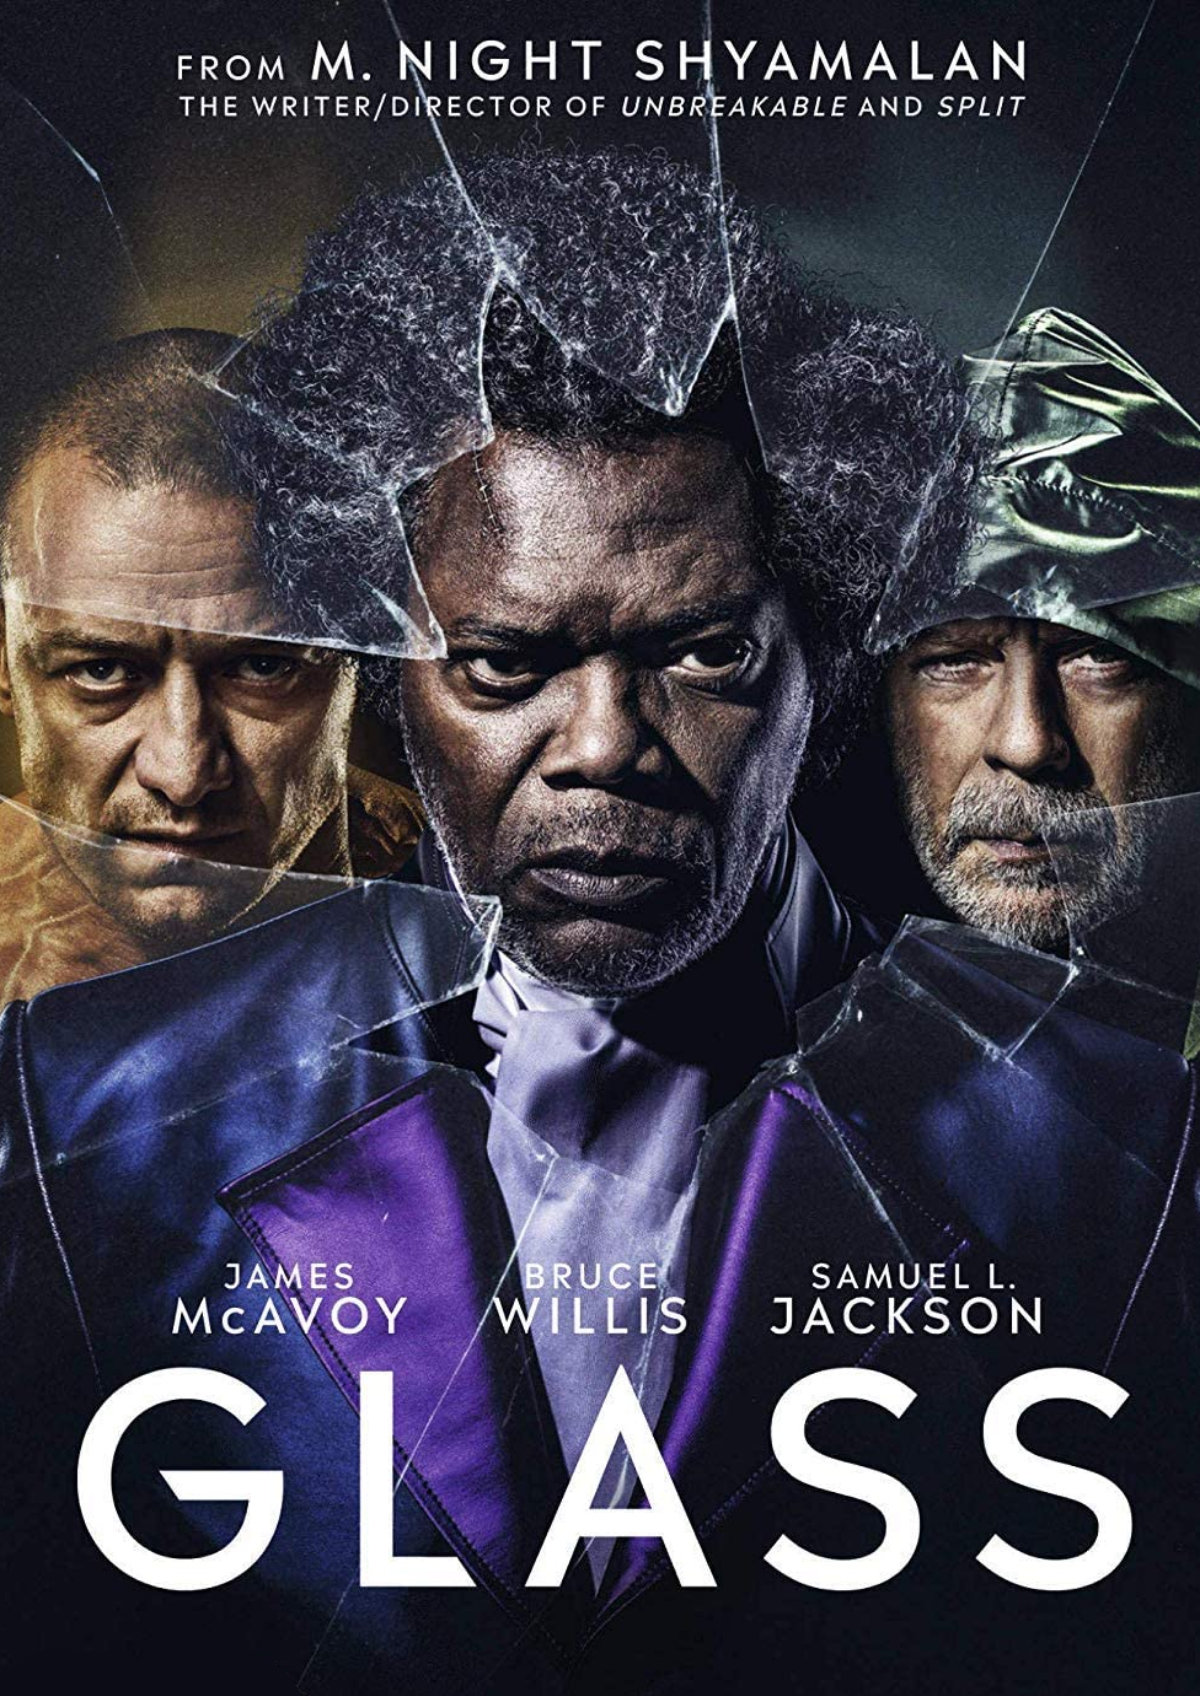 'Glass' movie poster